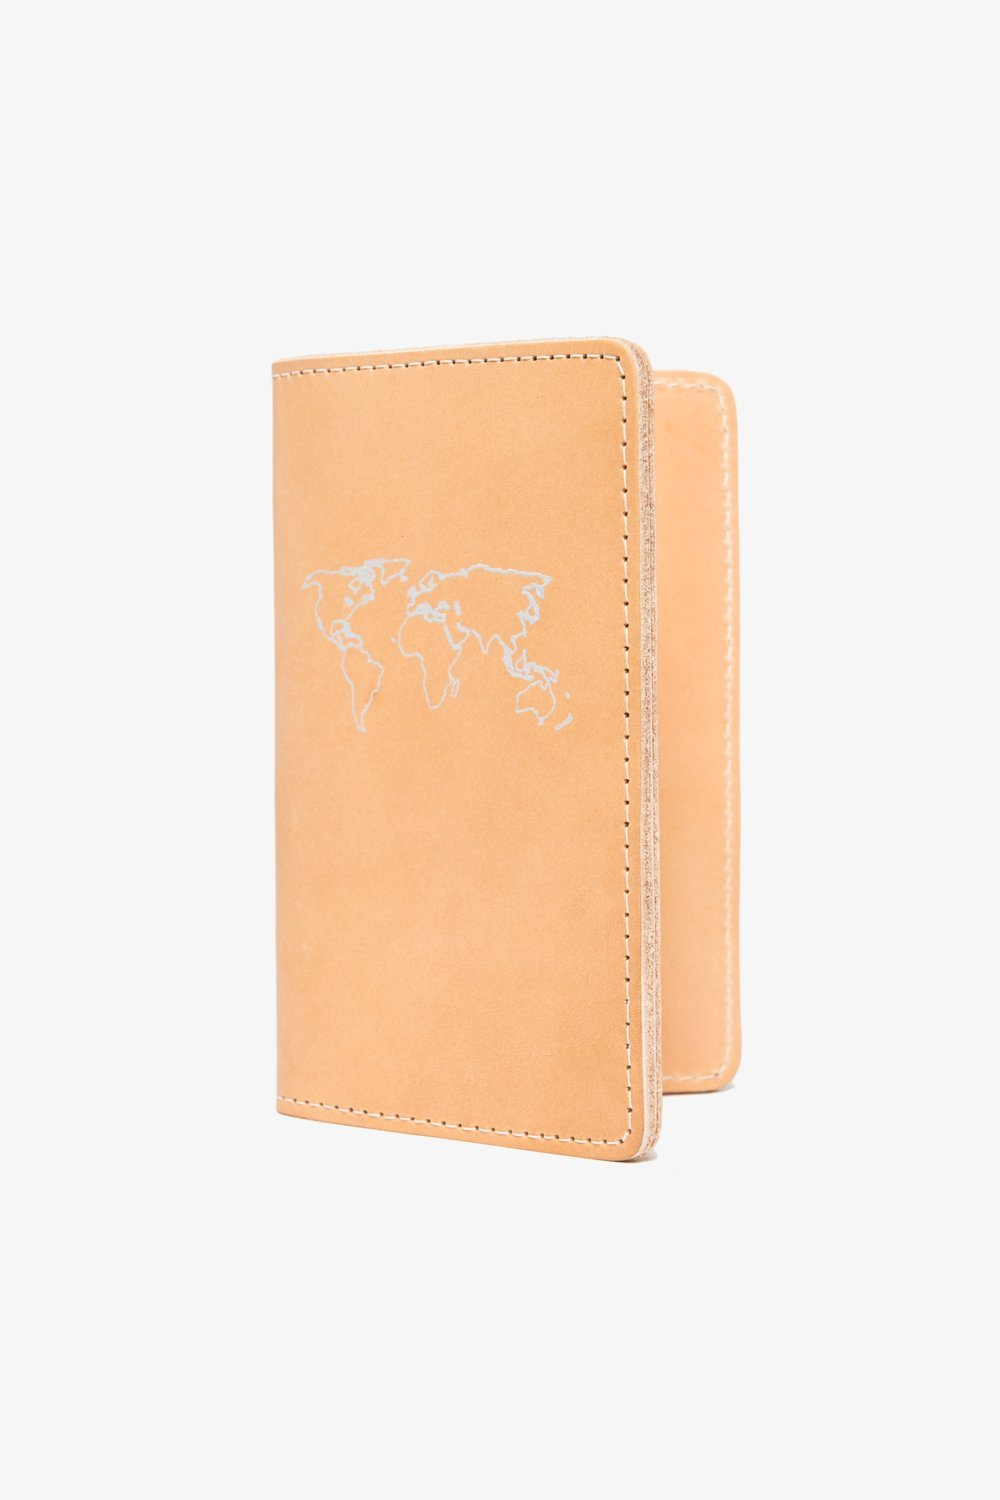 Leather Passport Wallet - Vachetta Accessories Jack + Mulligan